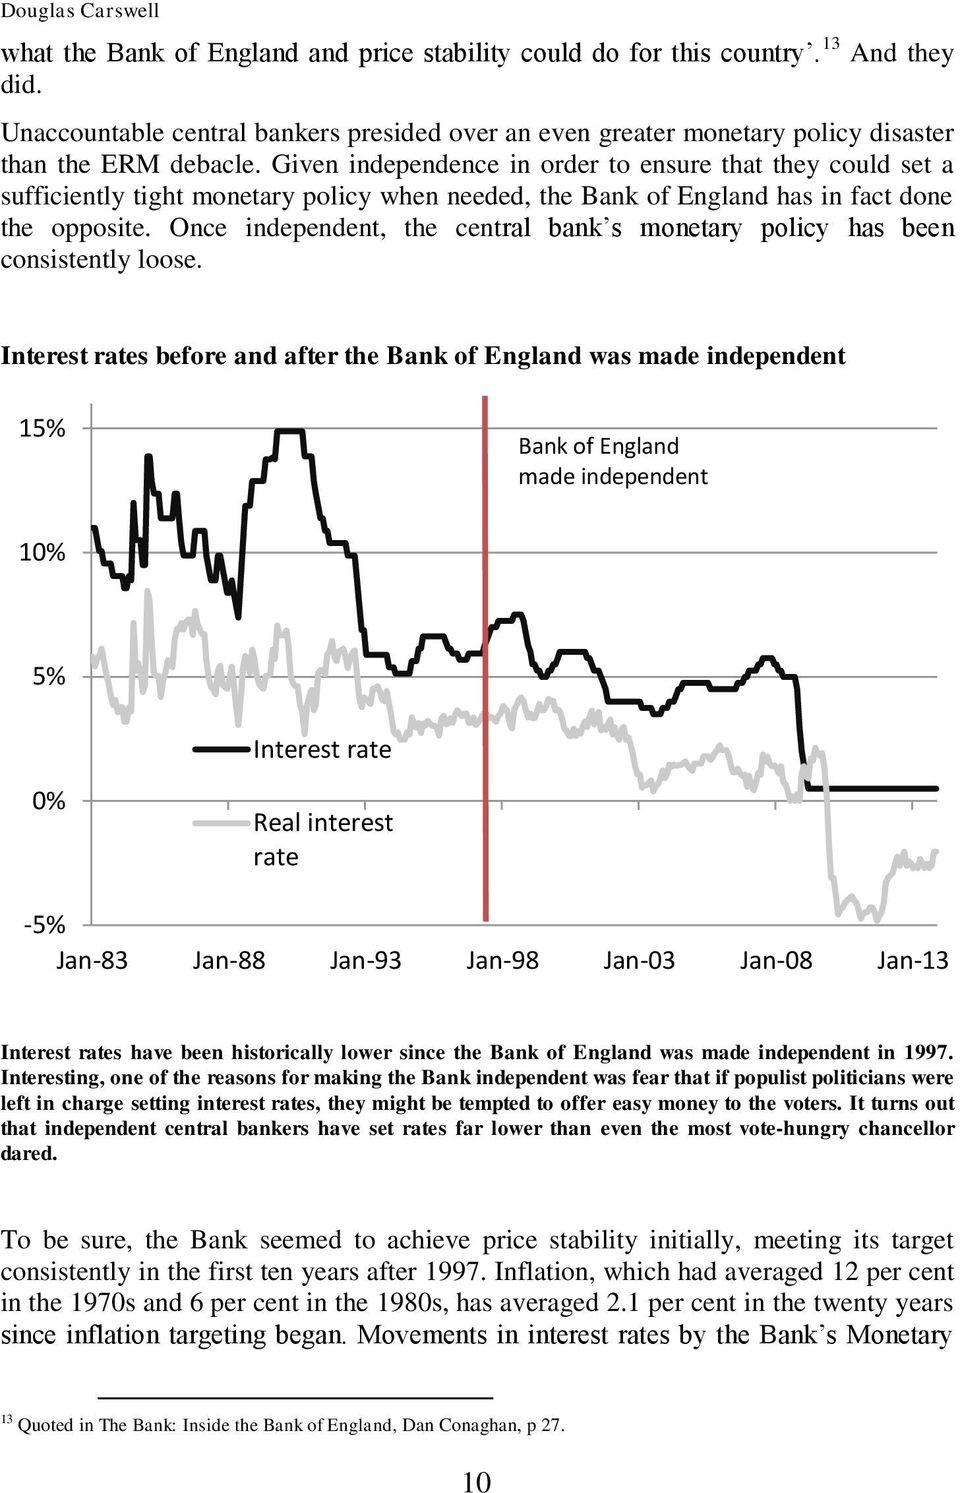 Given independence in order to ensure that they could set a sufficiently tight monetary policy when needed, the Bank of England has in fact done the opposite.